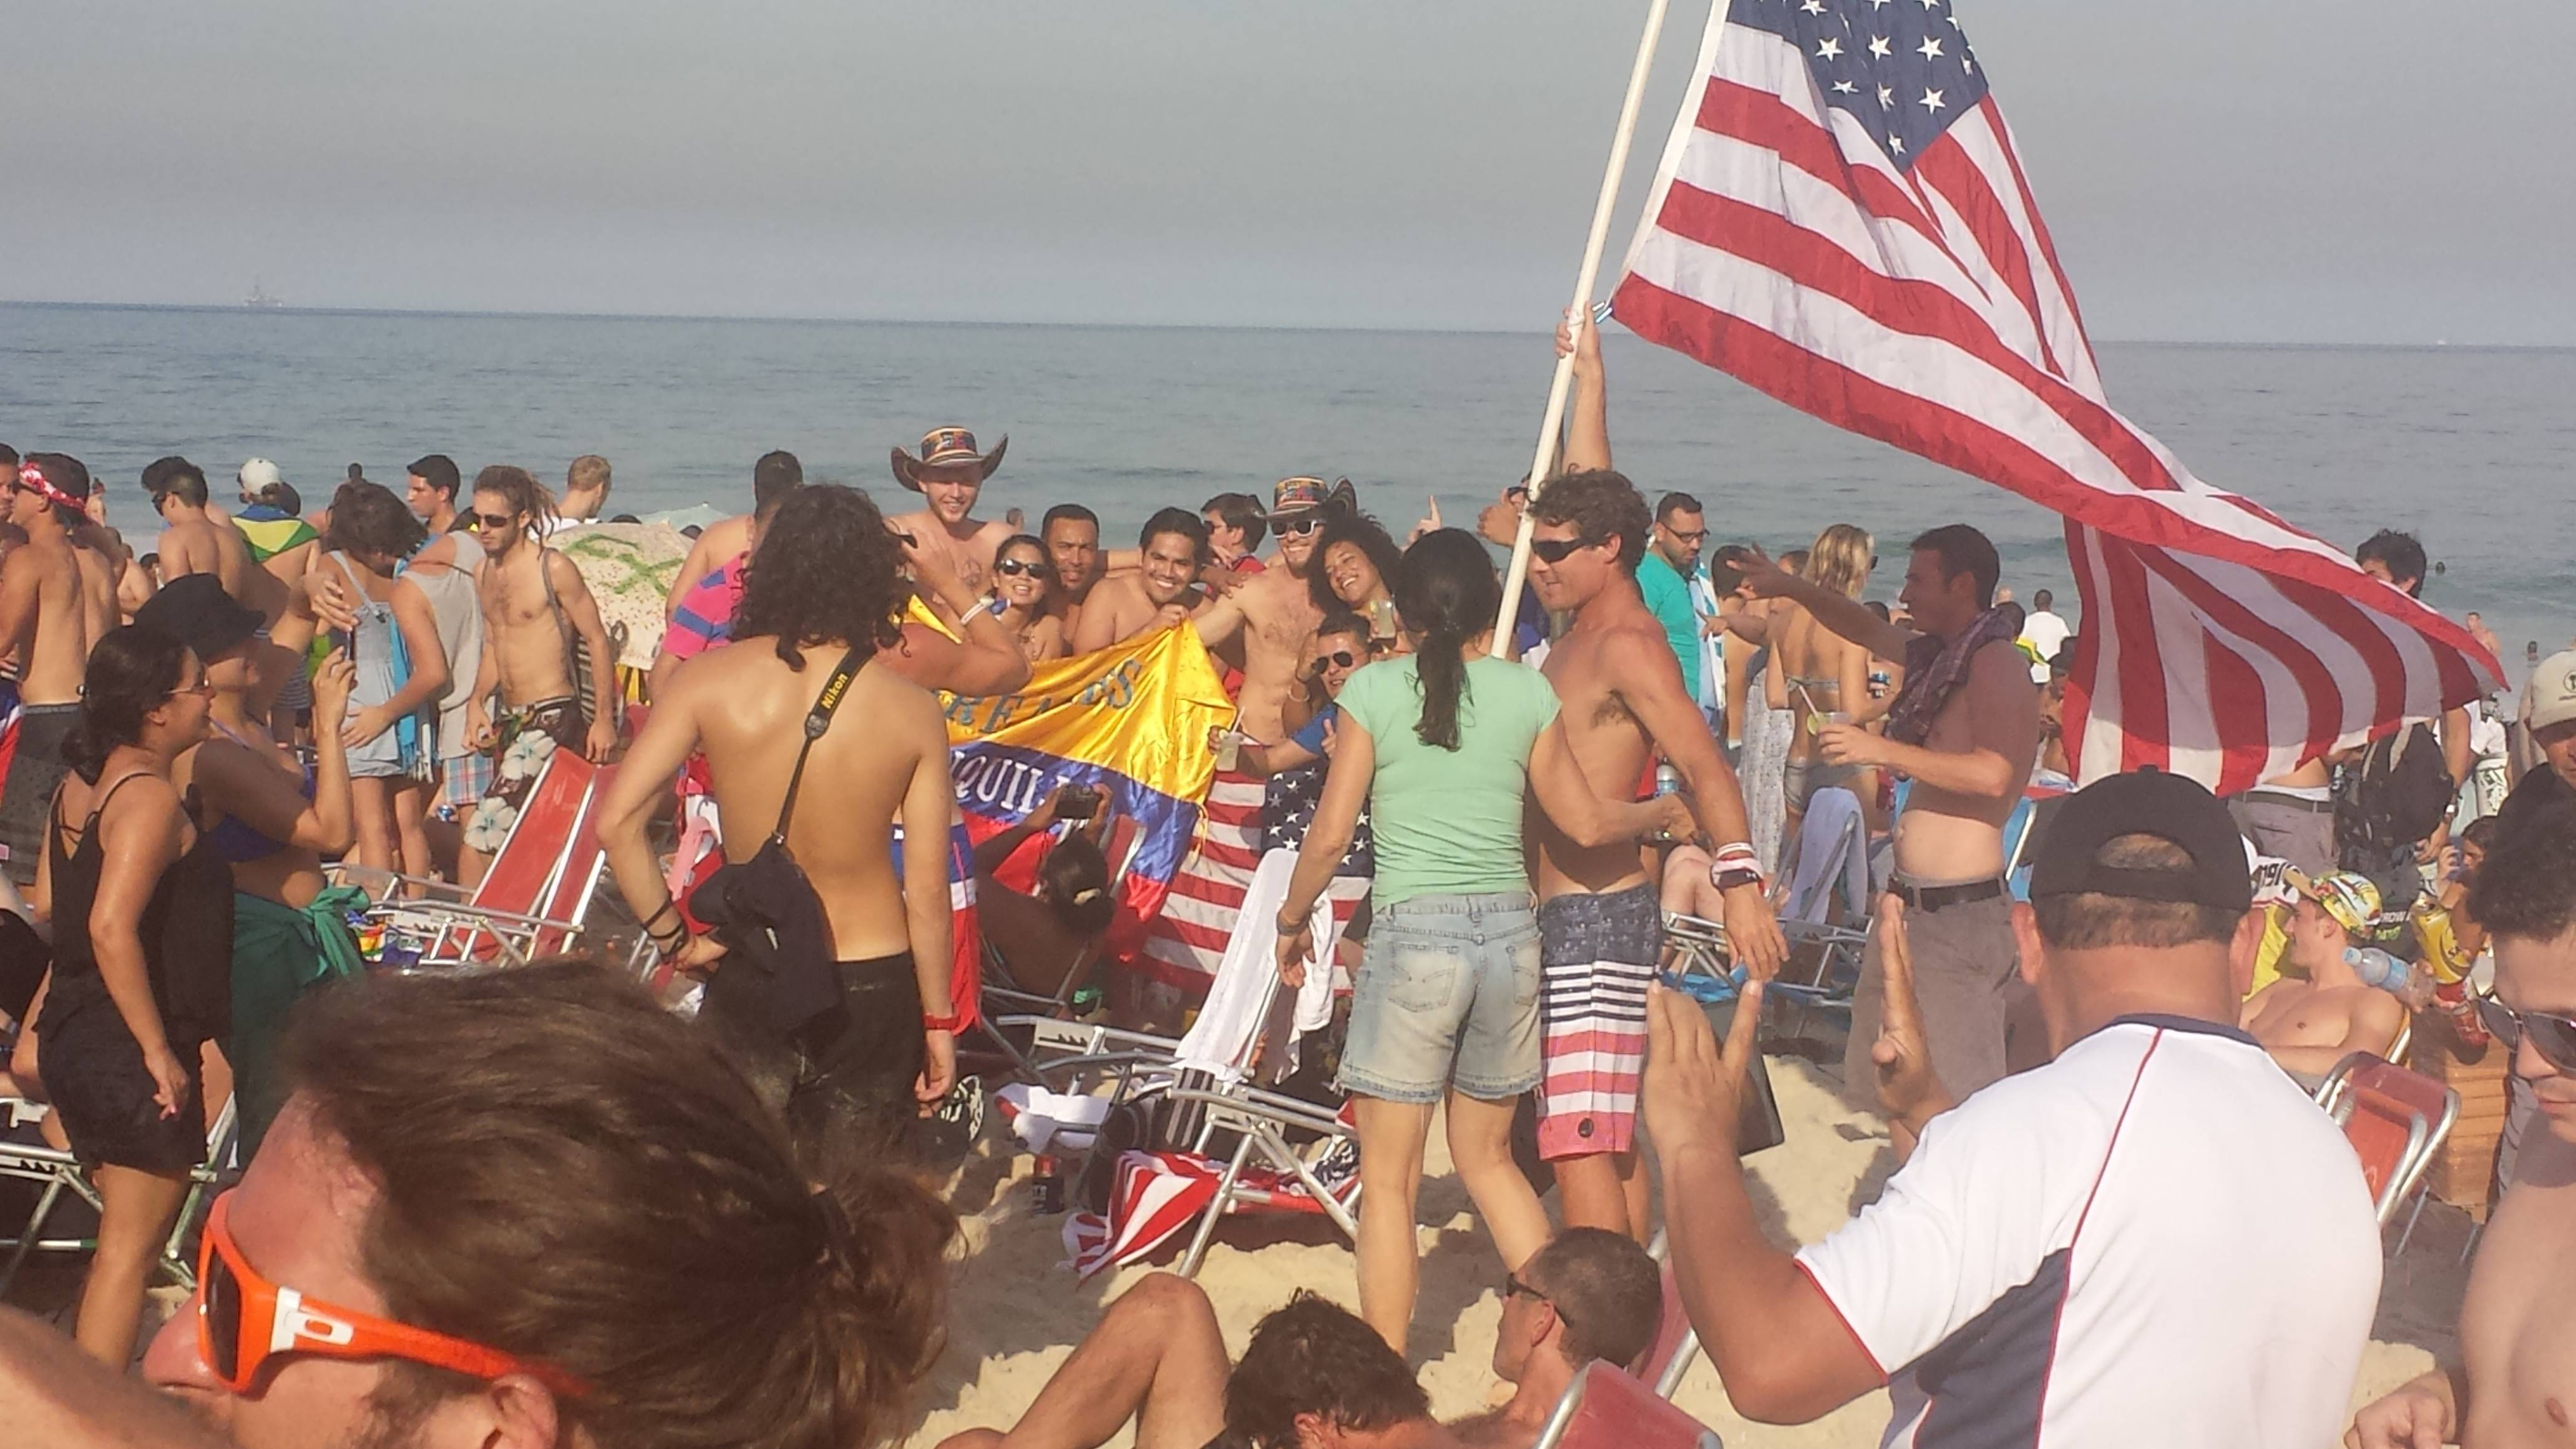 Copacabana beach in Rio de Janeiro was packed with World Cup fans waiting for the start of the USA vs. Germany game on Thursday.